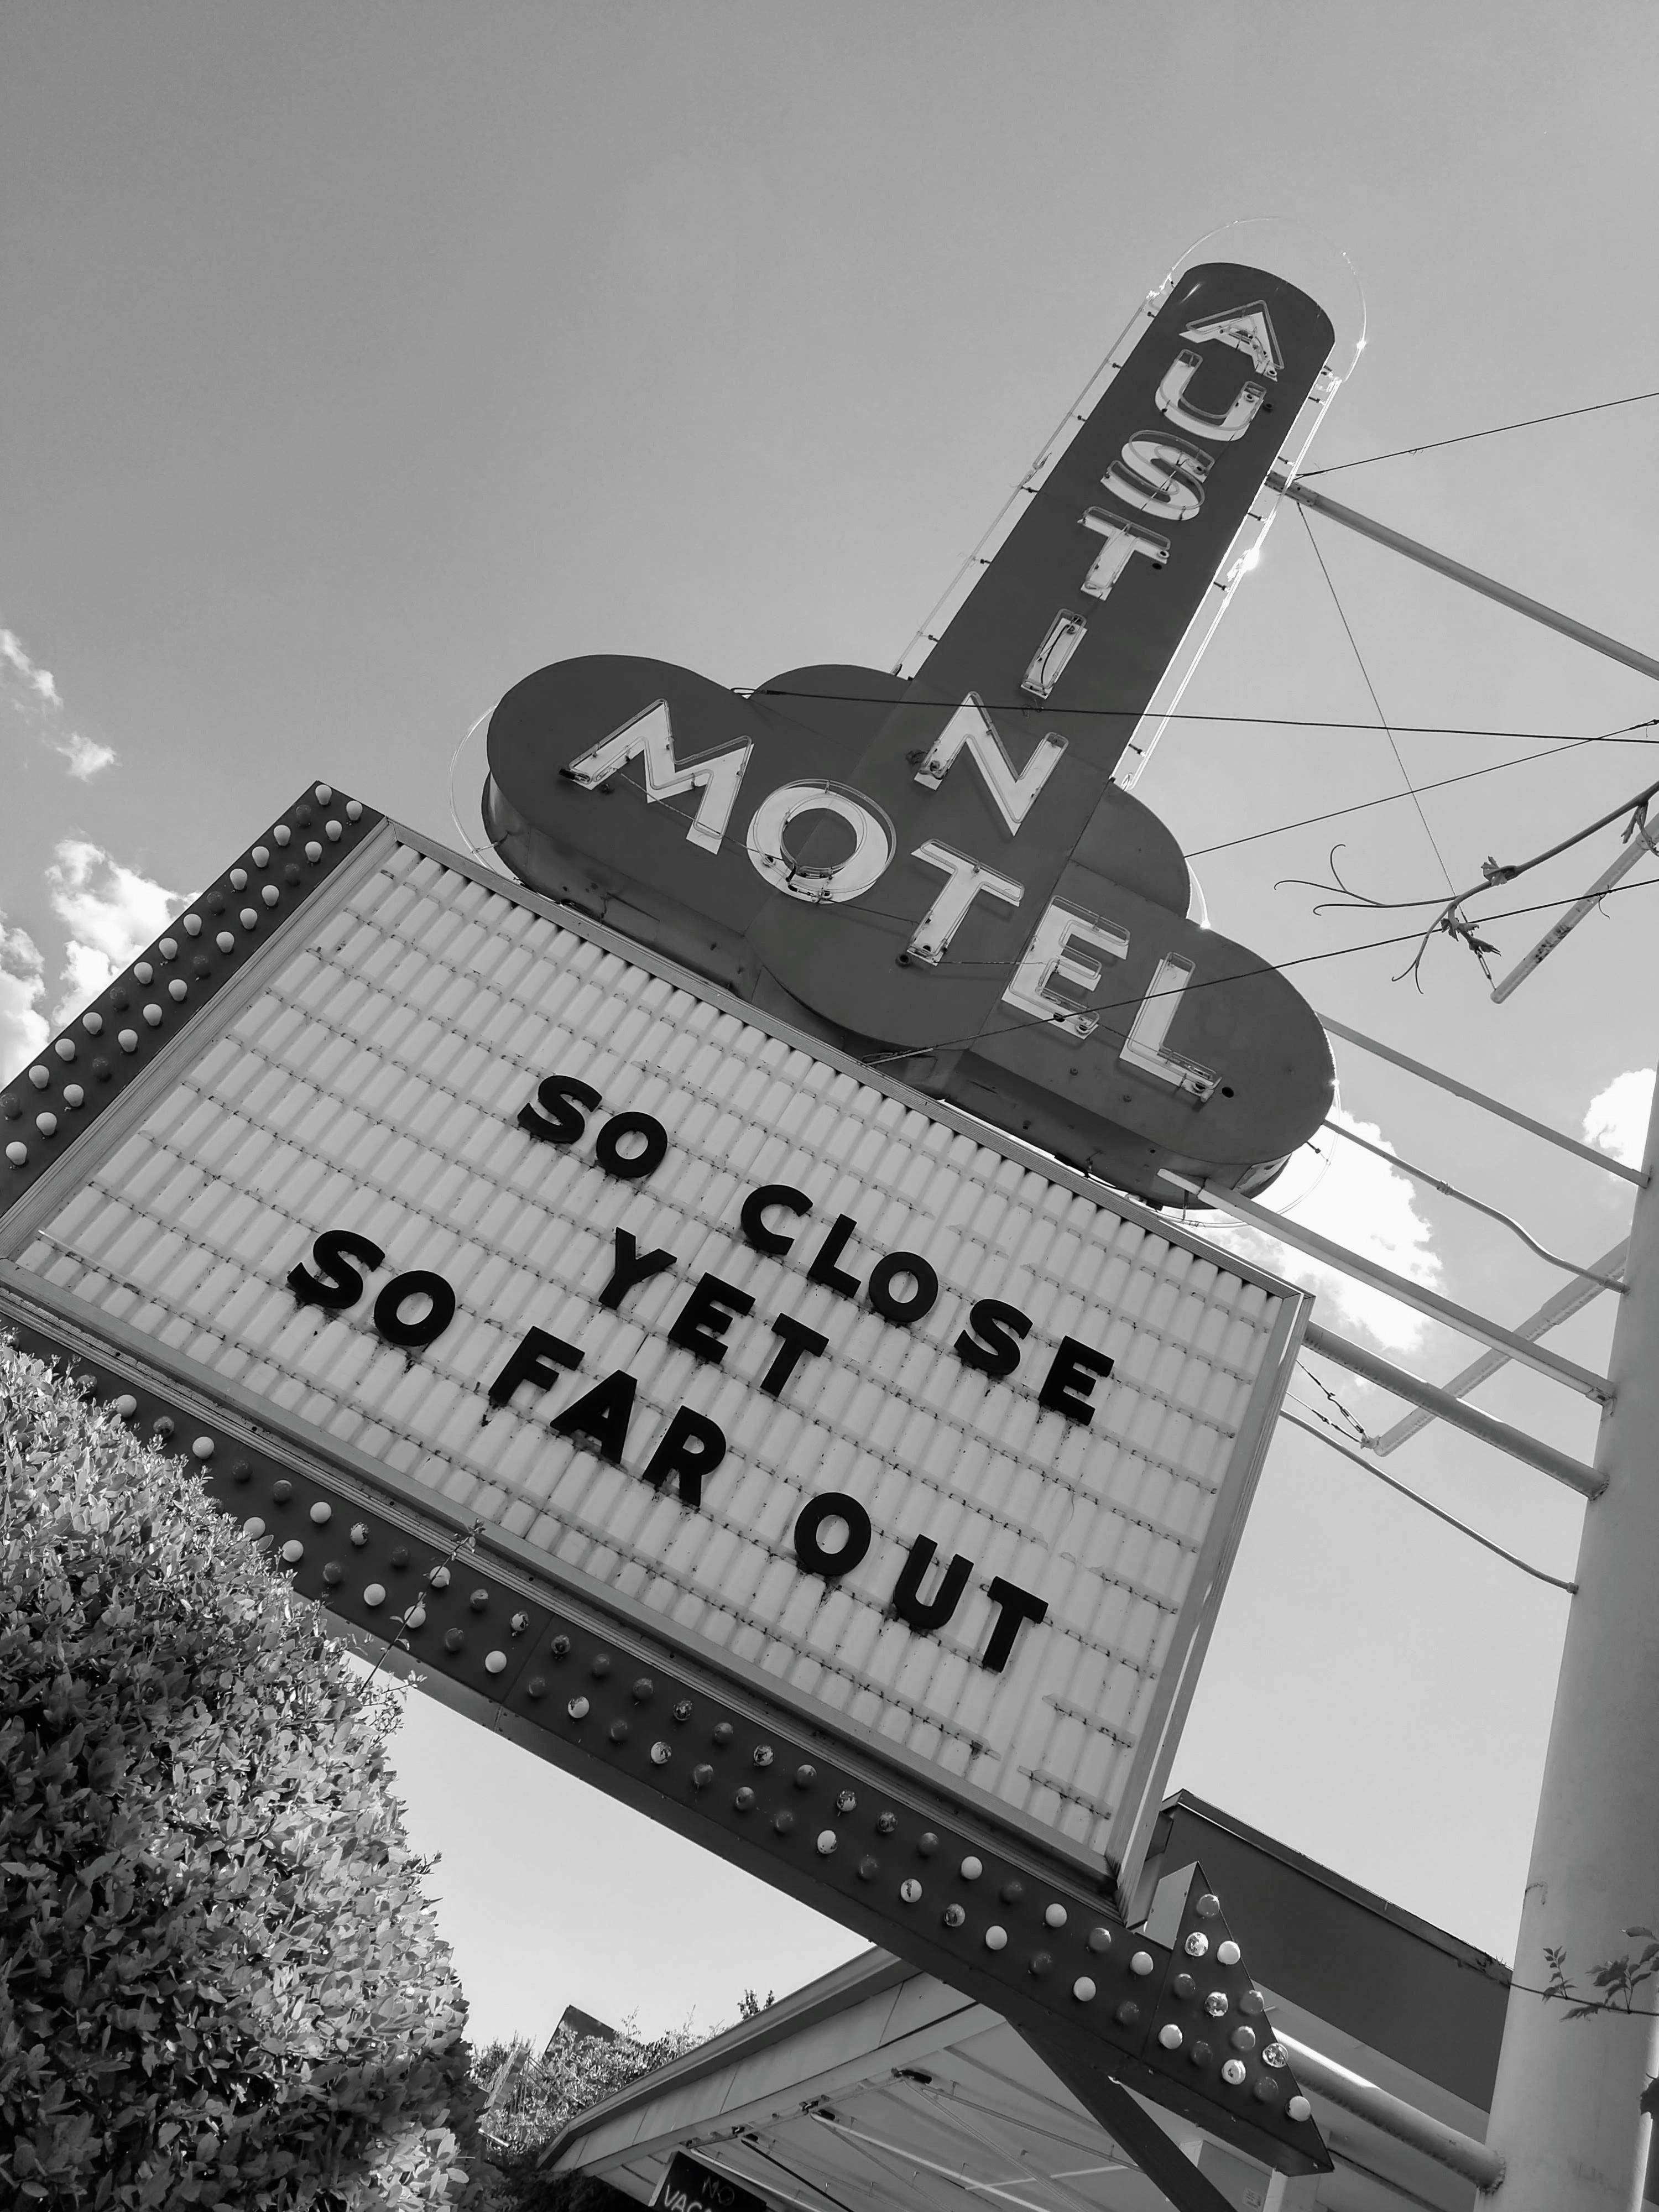 An old hotel sign in Austin, Texas.